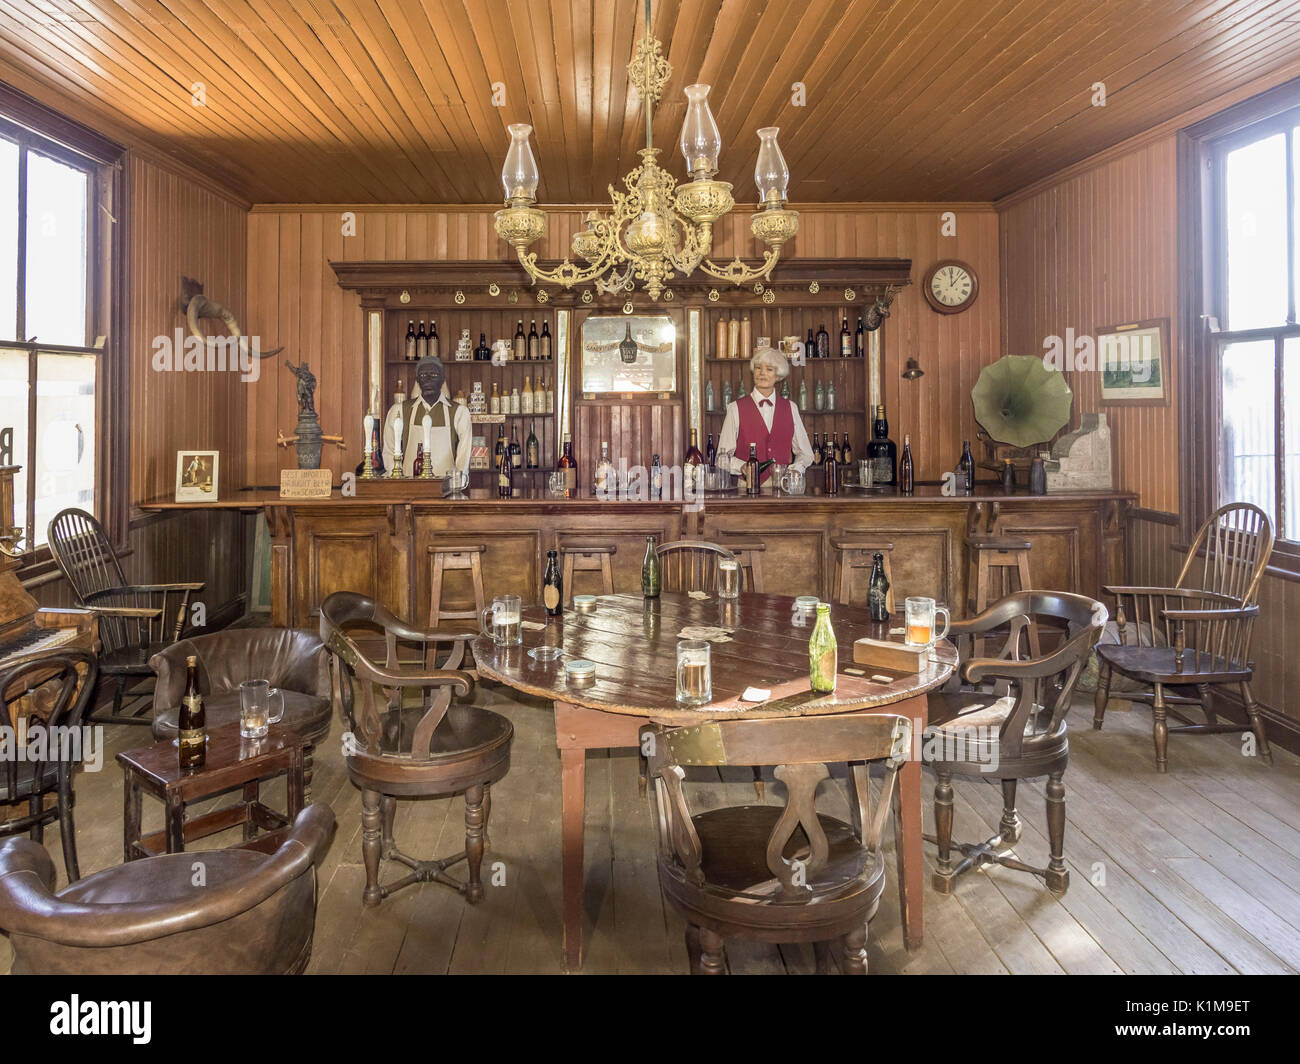 Saloon, open-air museum at Big Hole, Kimberley, North Cape, South Africa - Stock Image